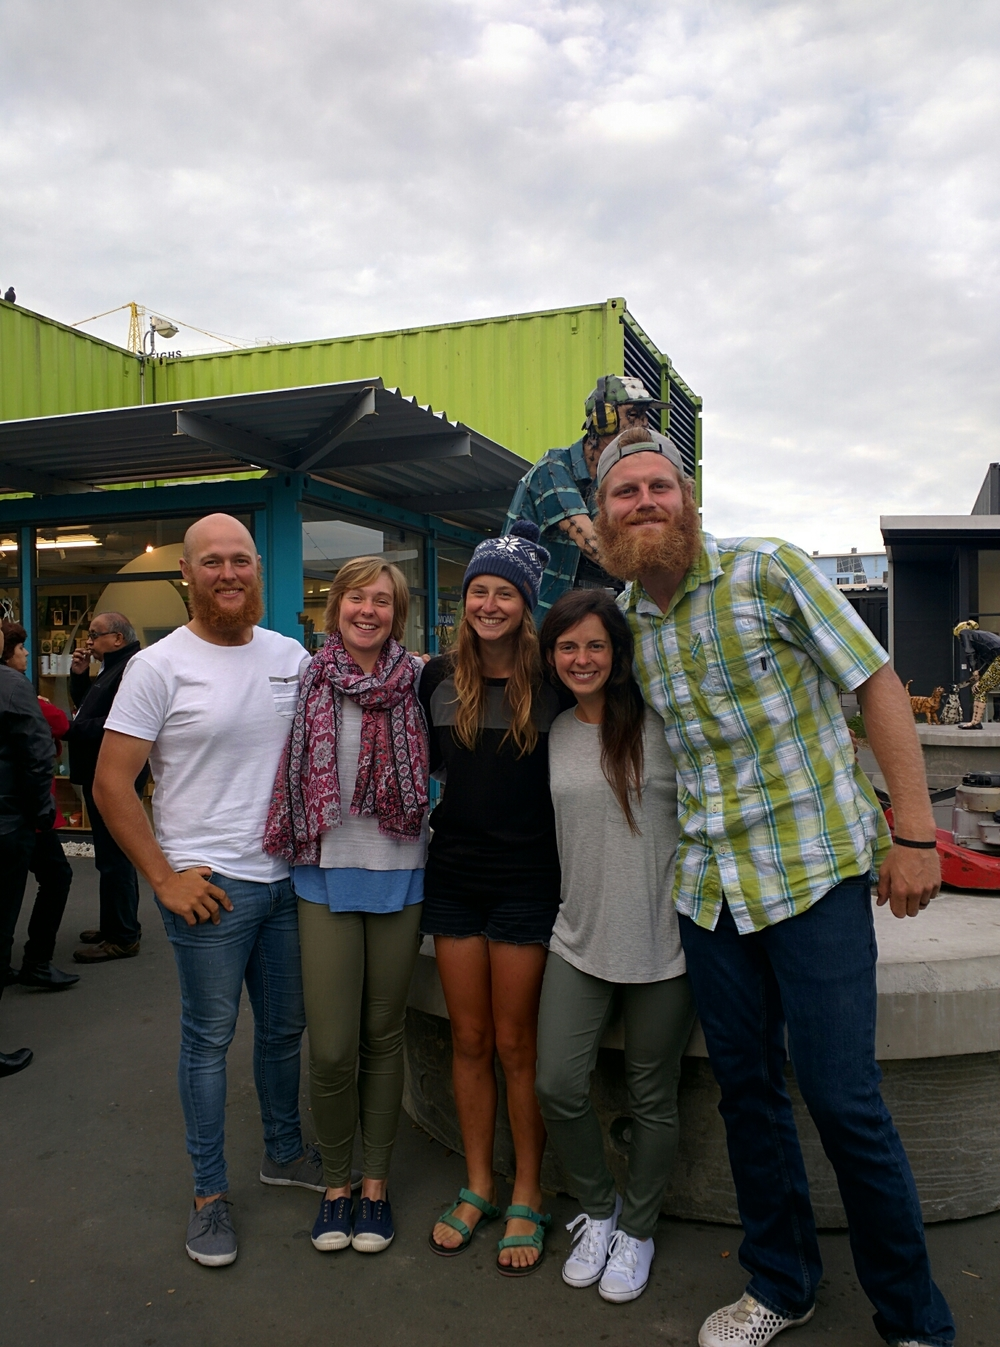 Look who we ran into at the container mall- our good friend from the trail, Becca! Our last day in New Zealand ahhh!